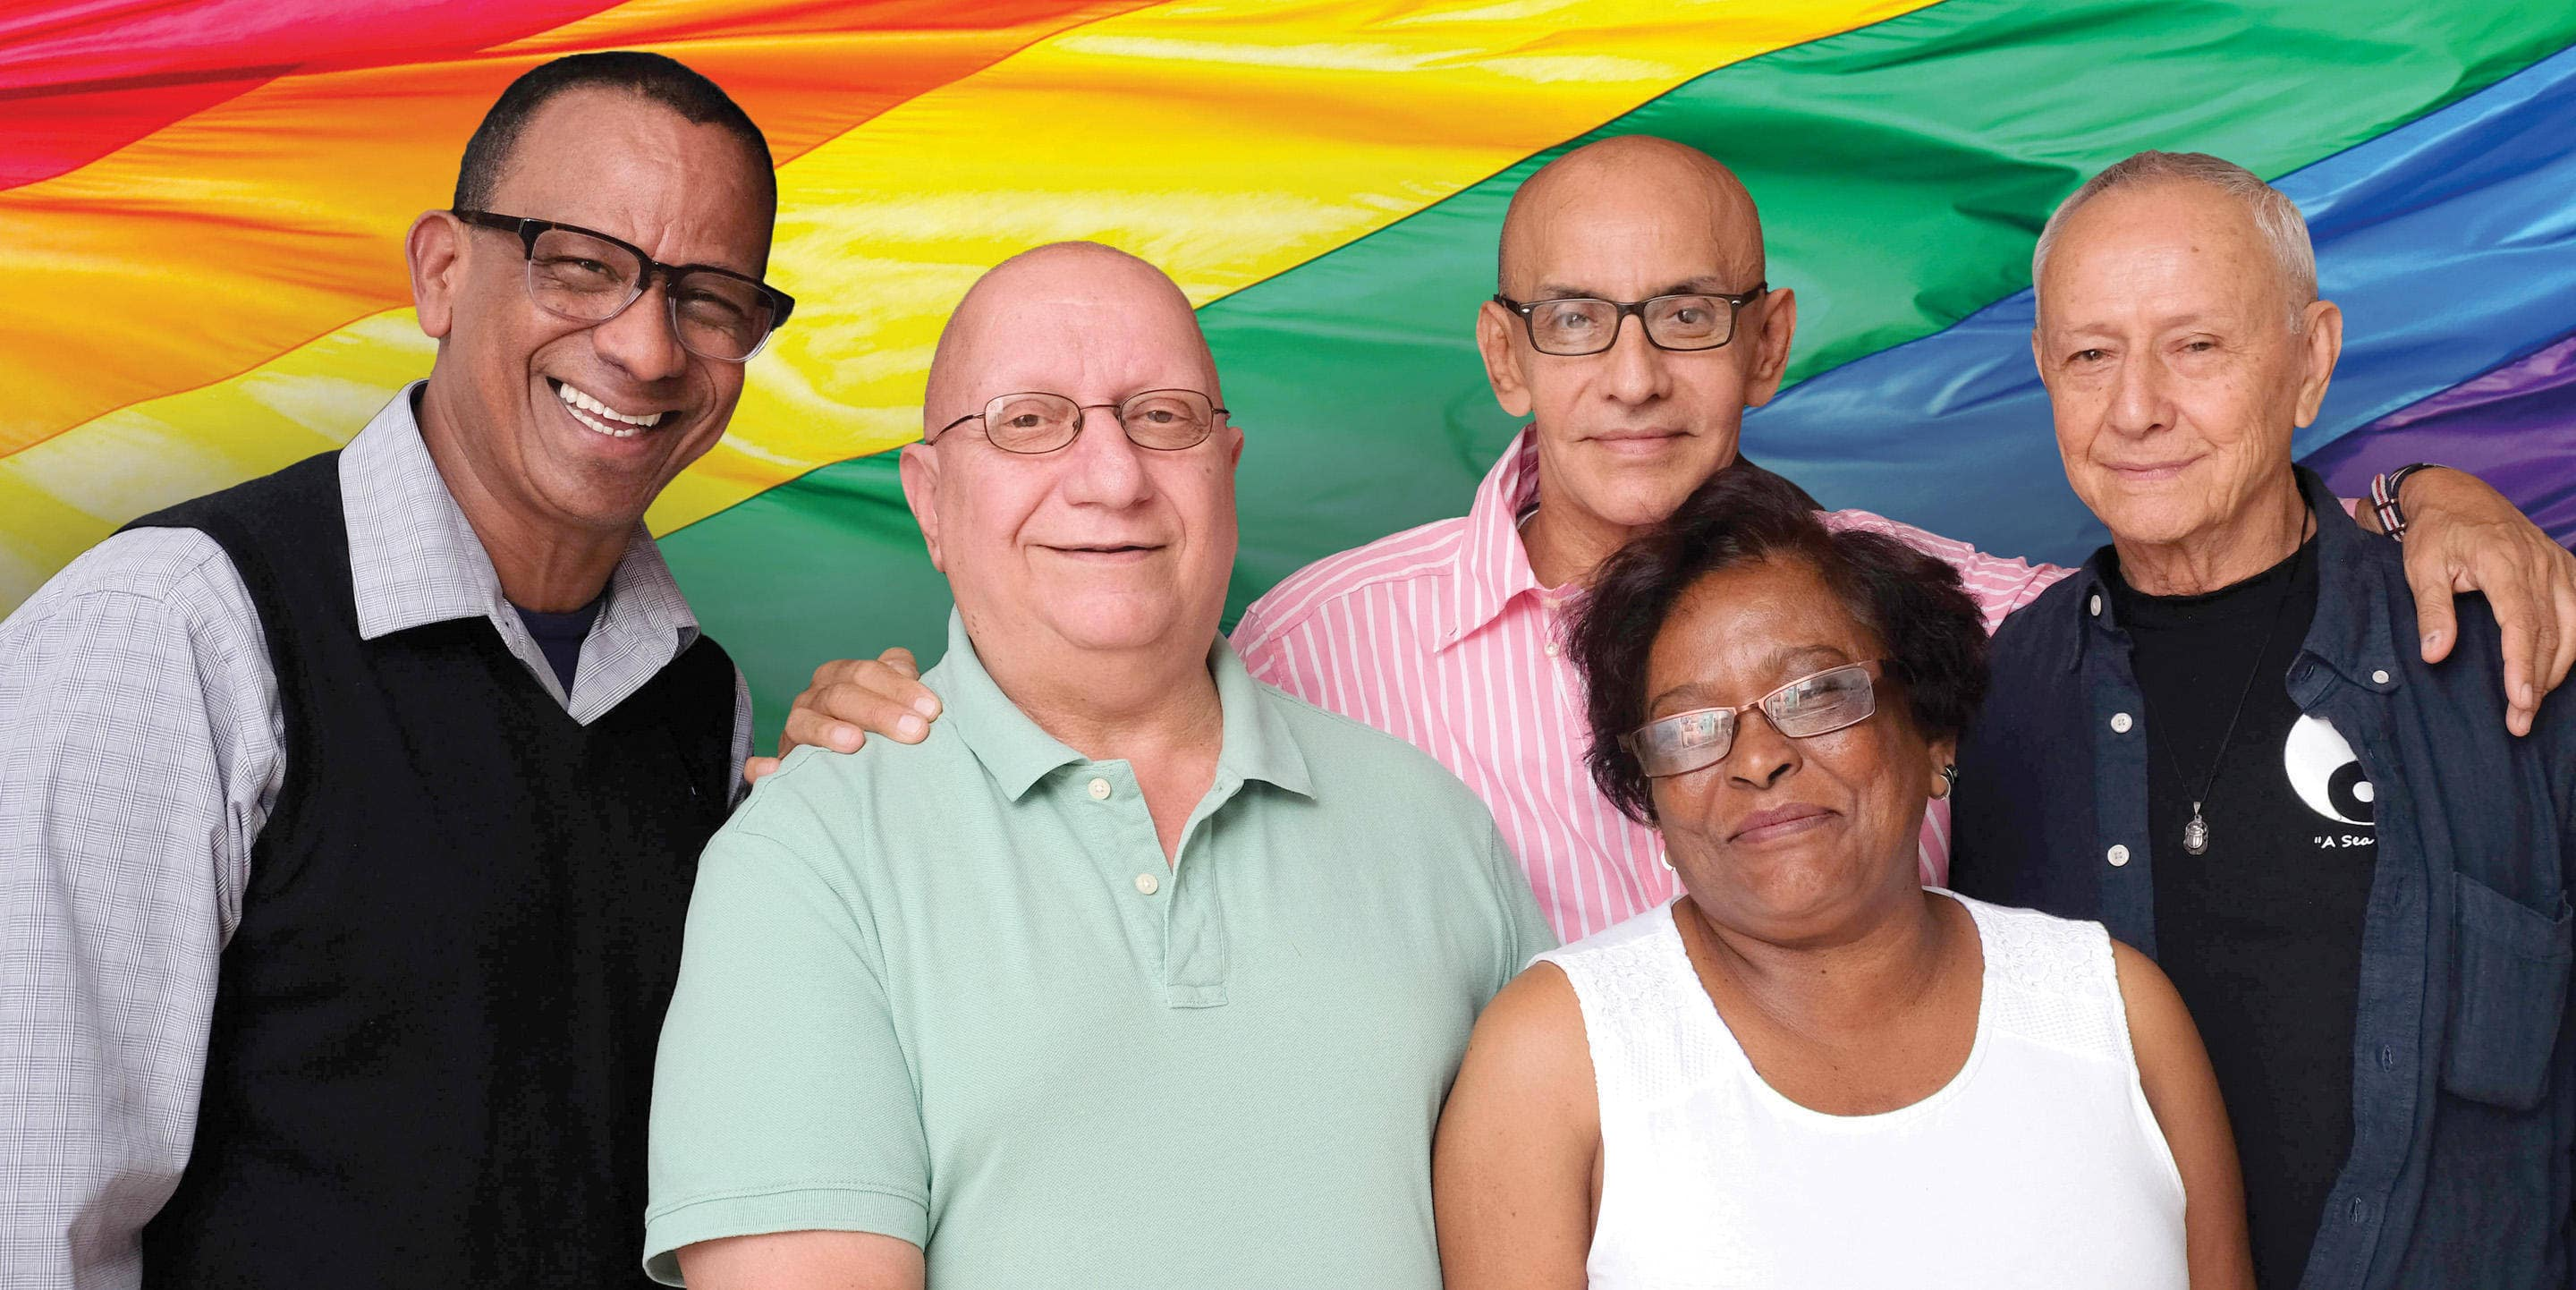 SAGE LGBT Elders with Supporters Rainbow Flag 1440x721 @2x